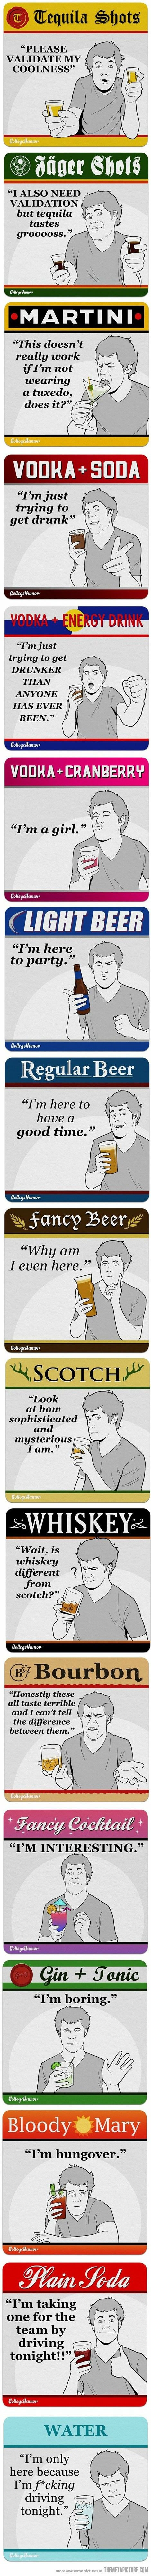 The true meaning of your adult beverage choice: haha